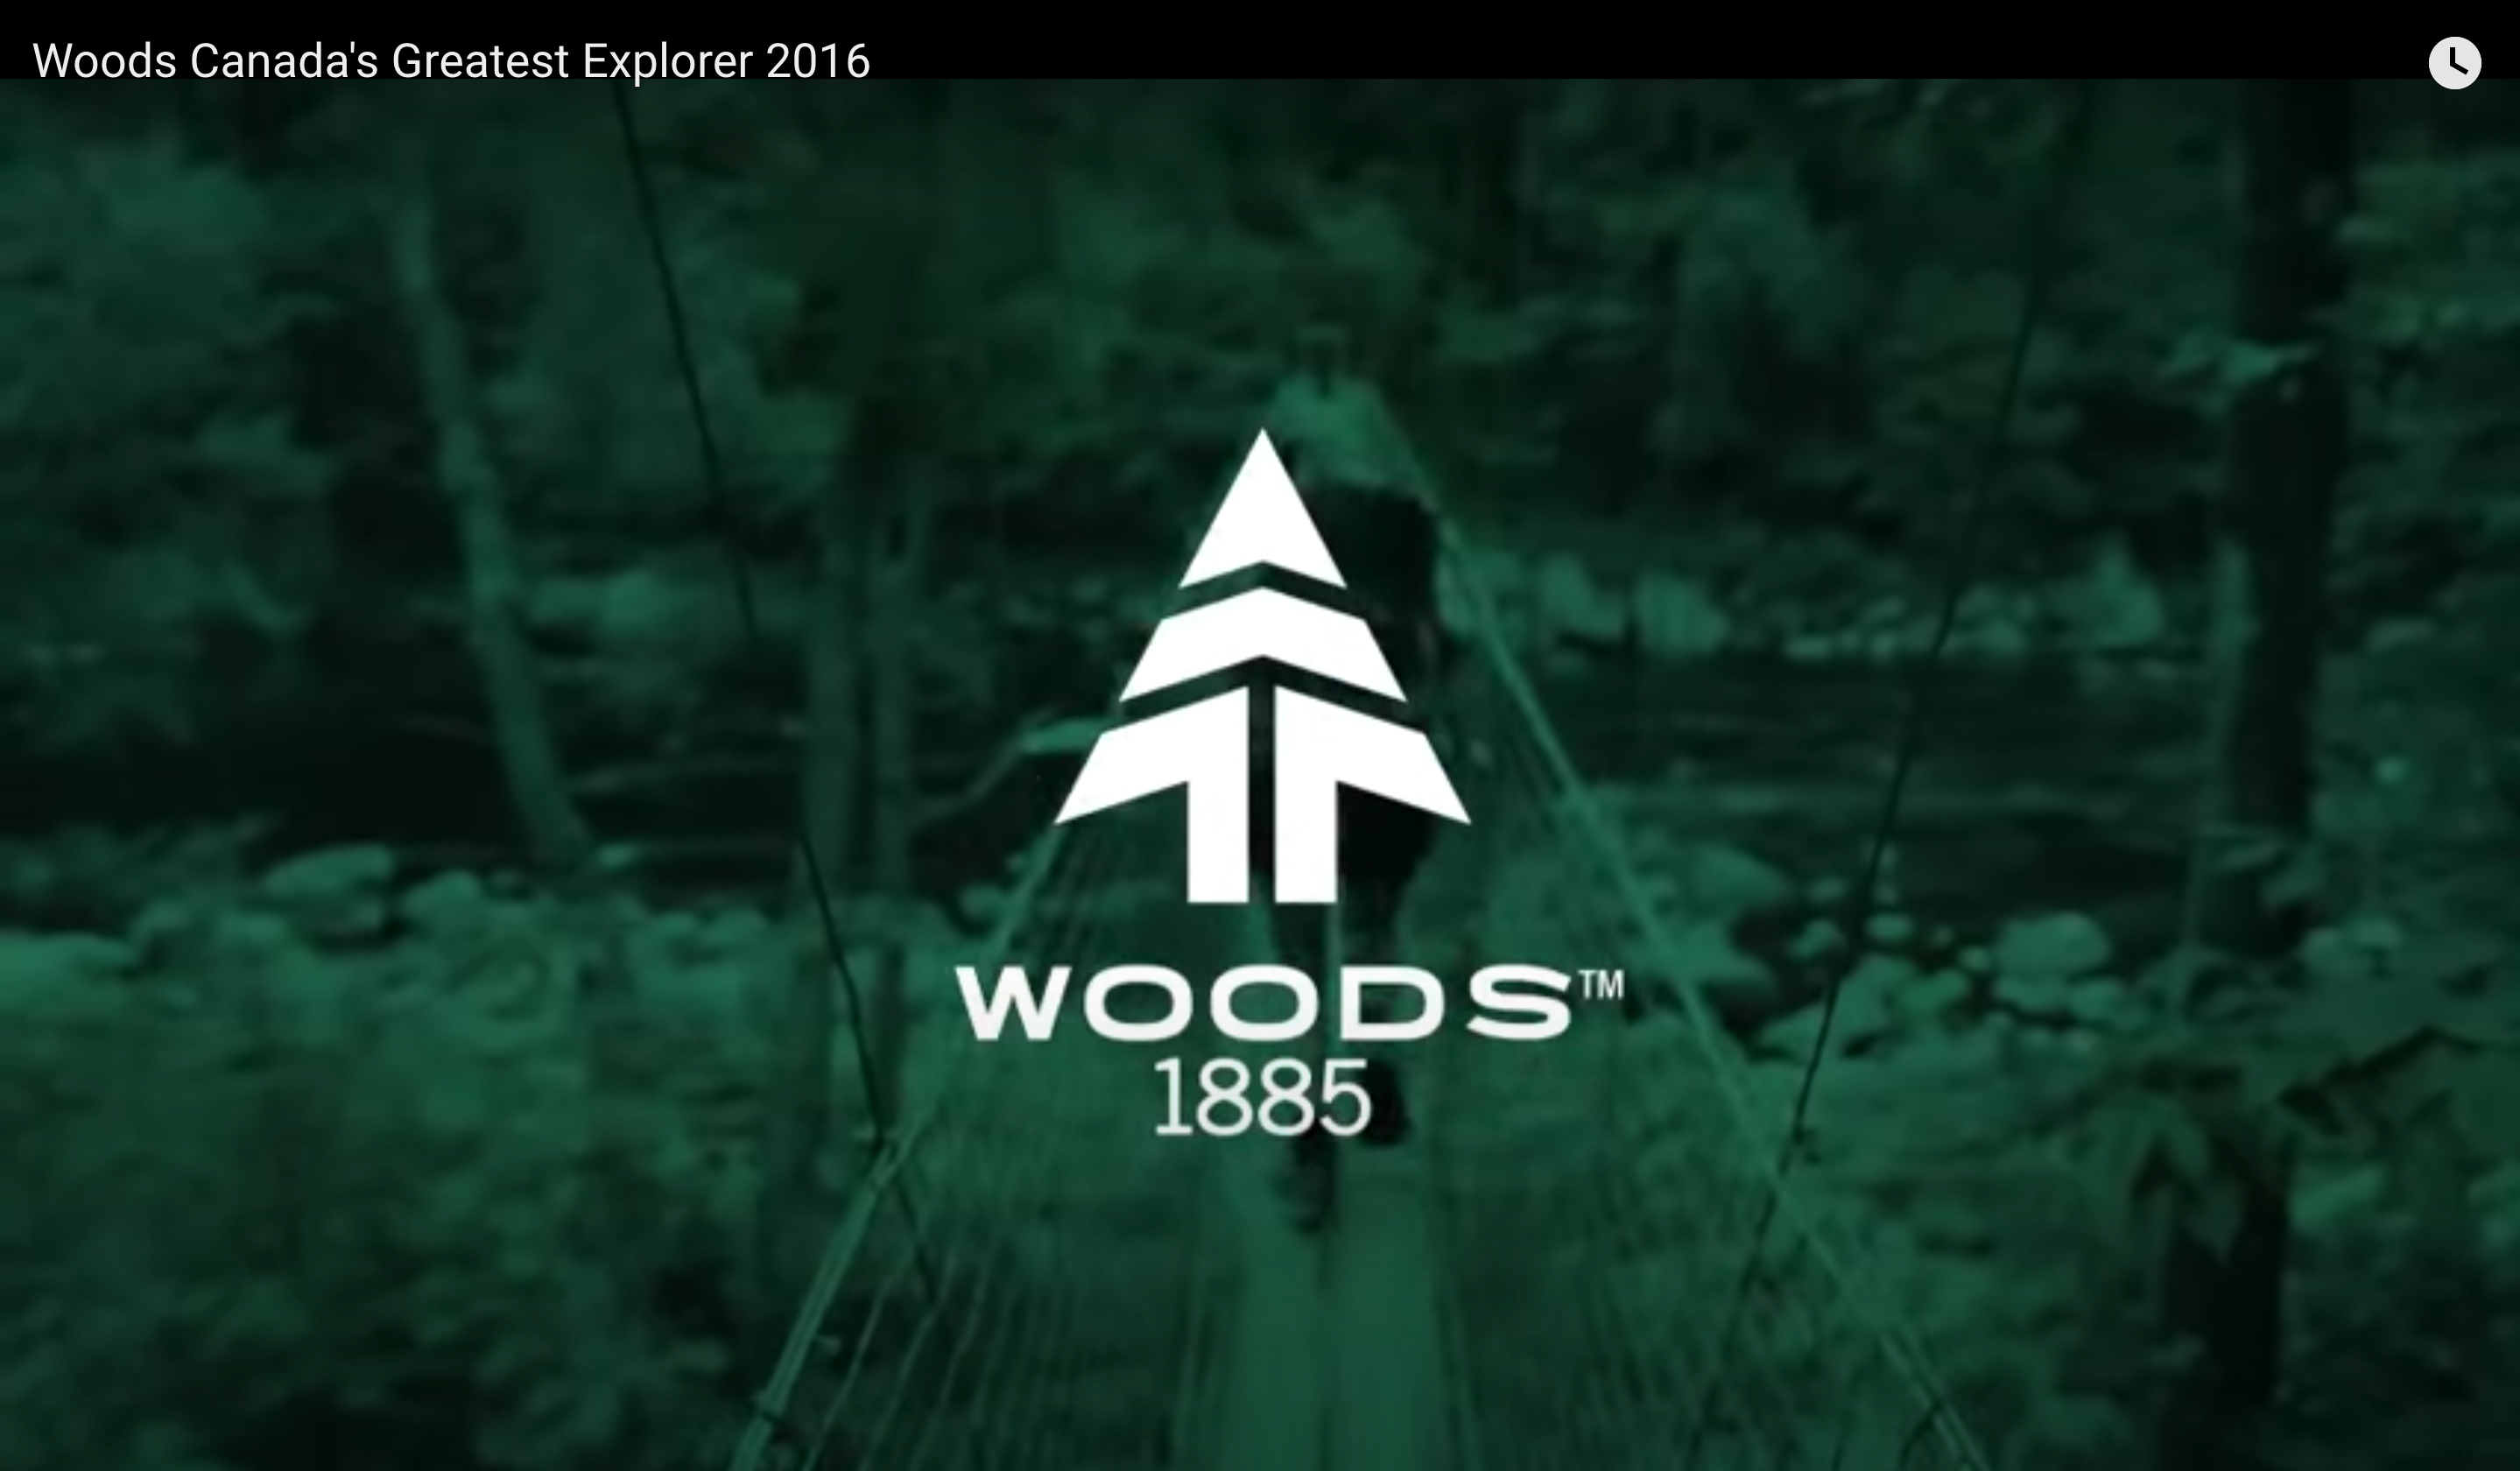 Woods Canada's Greatest Explorer 2016